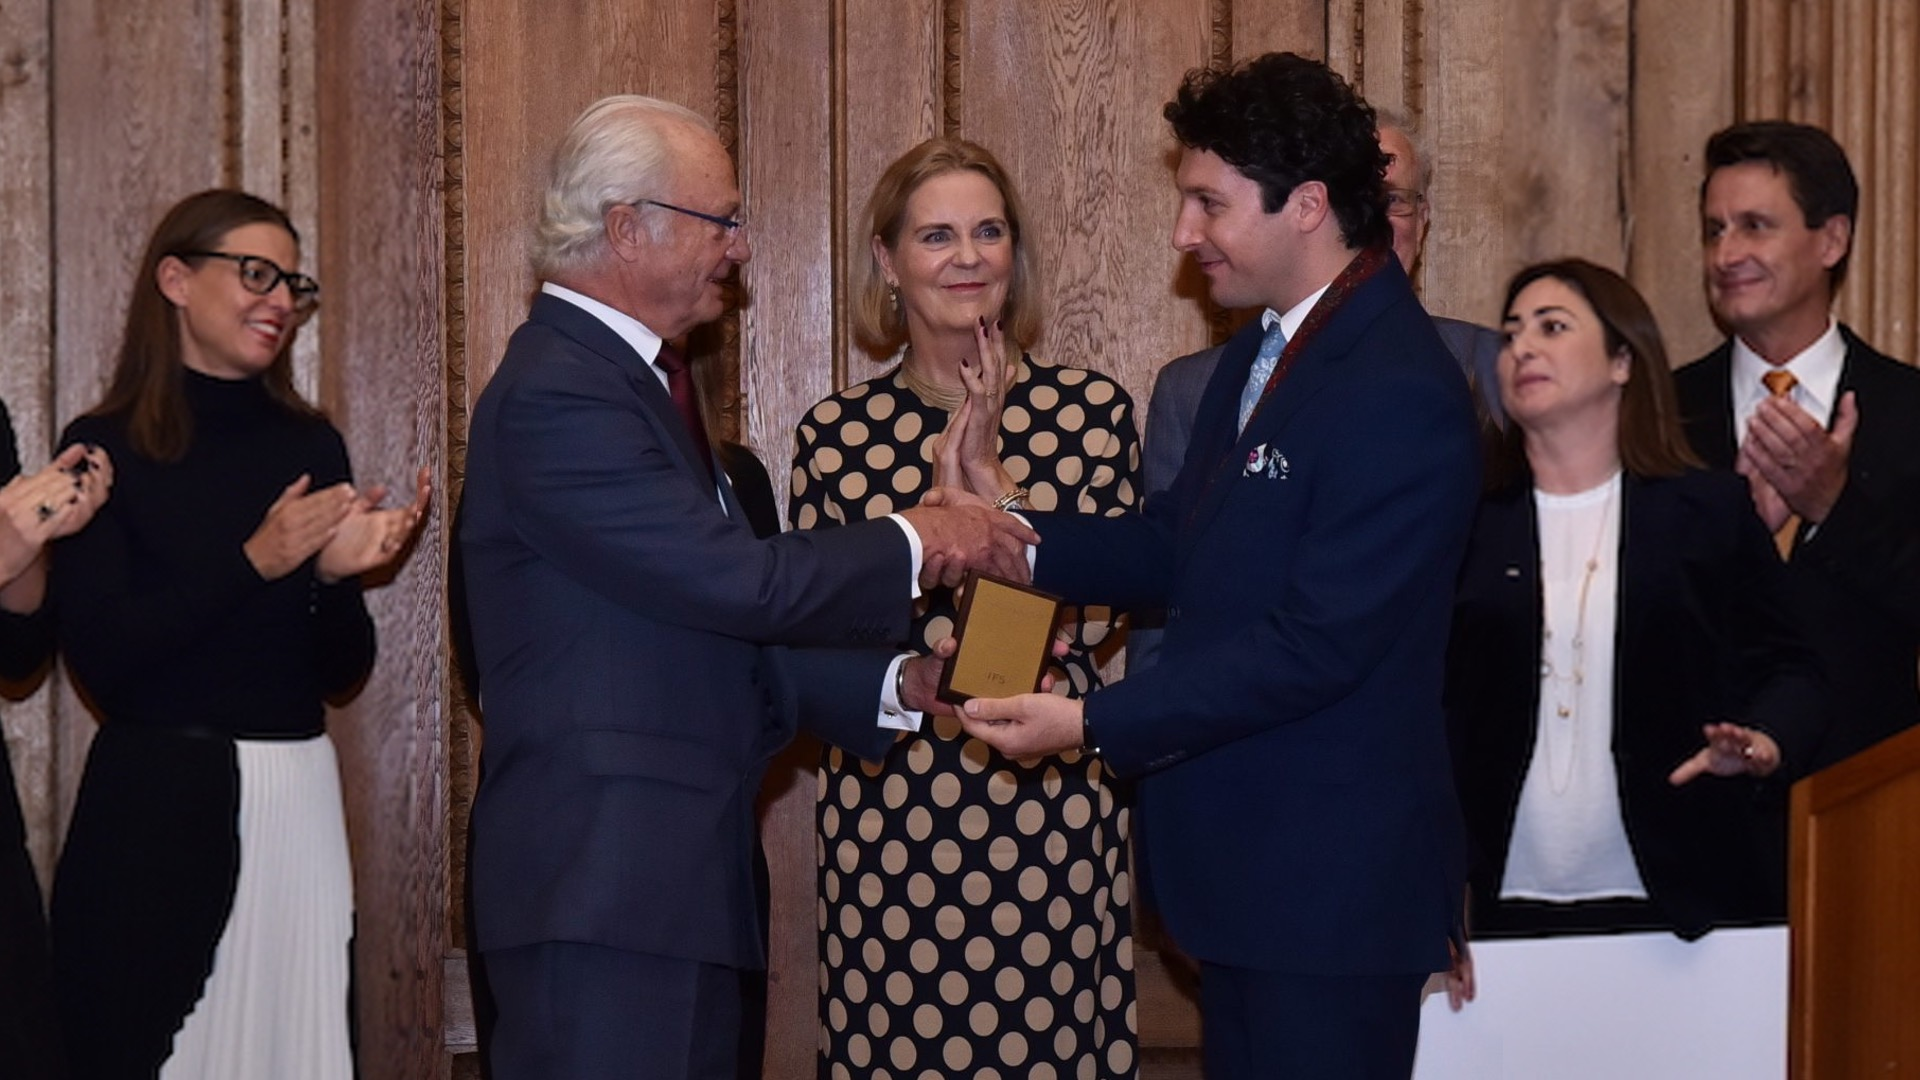 Awarded the royal entrepreneurial prize by the King of Sweden. Read the full story here!